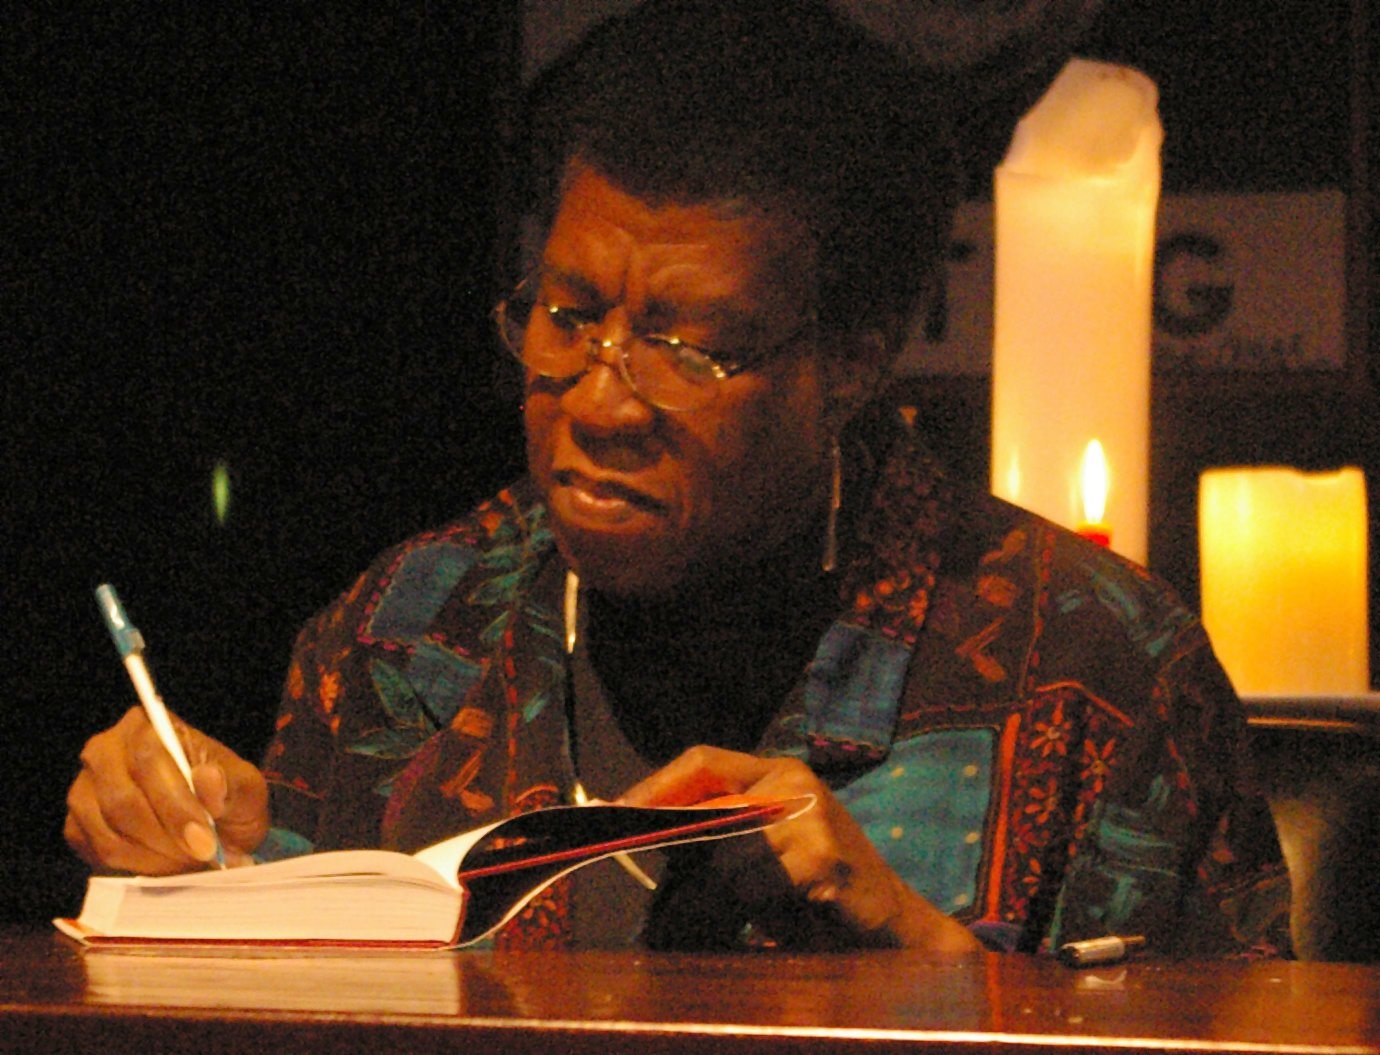 Octavia Butler herself, signing a hardcover copy of a book